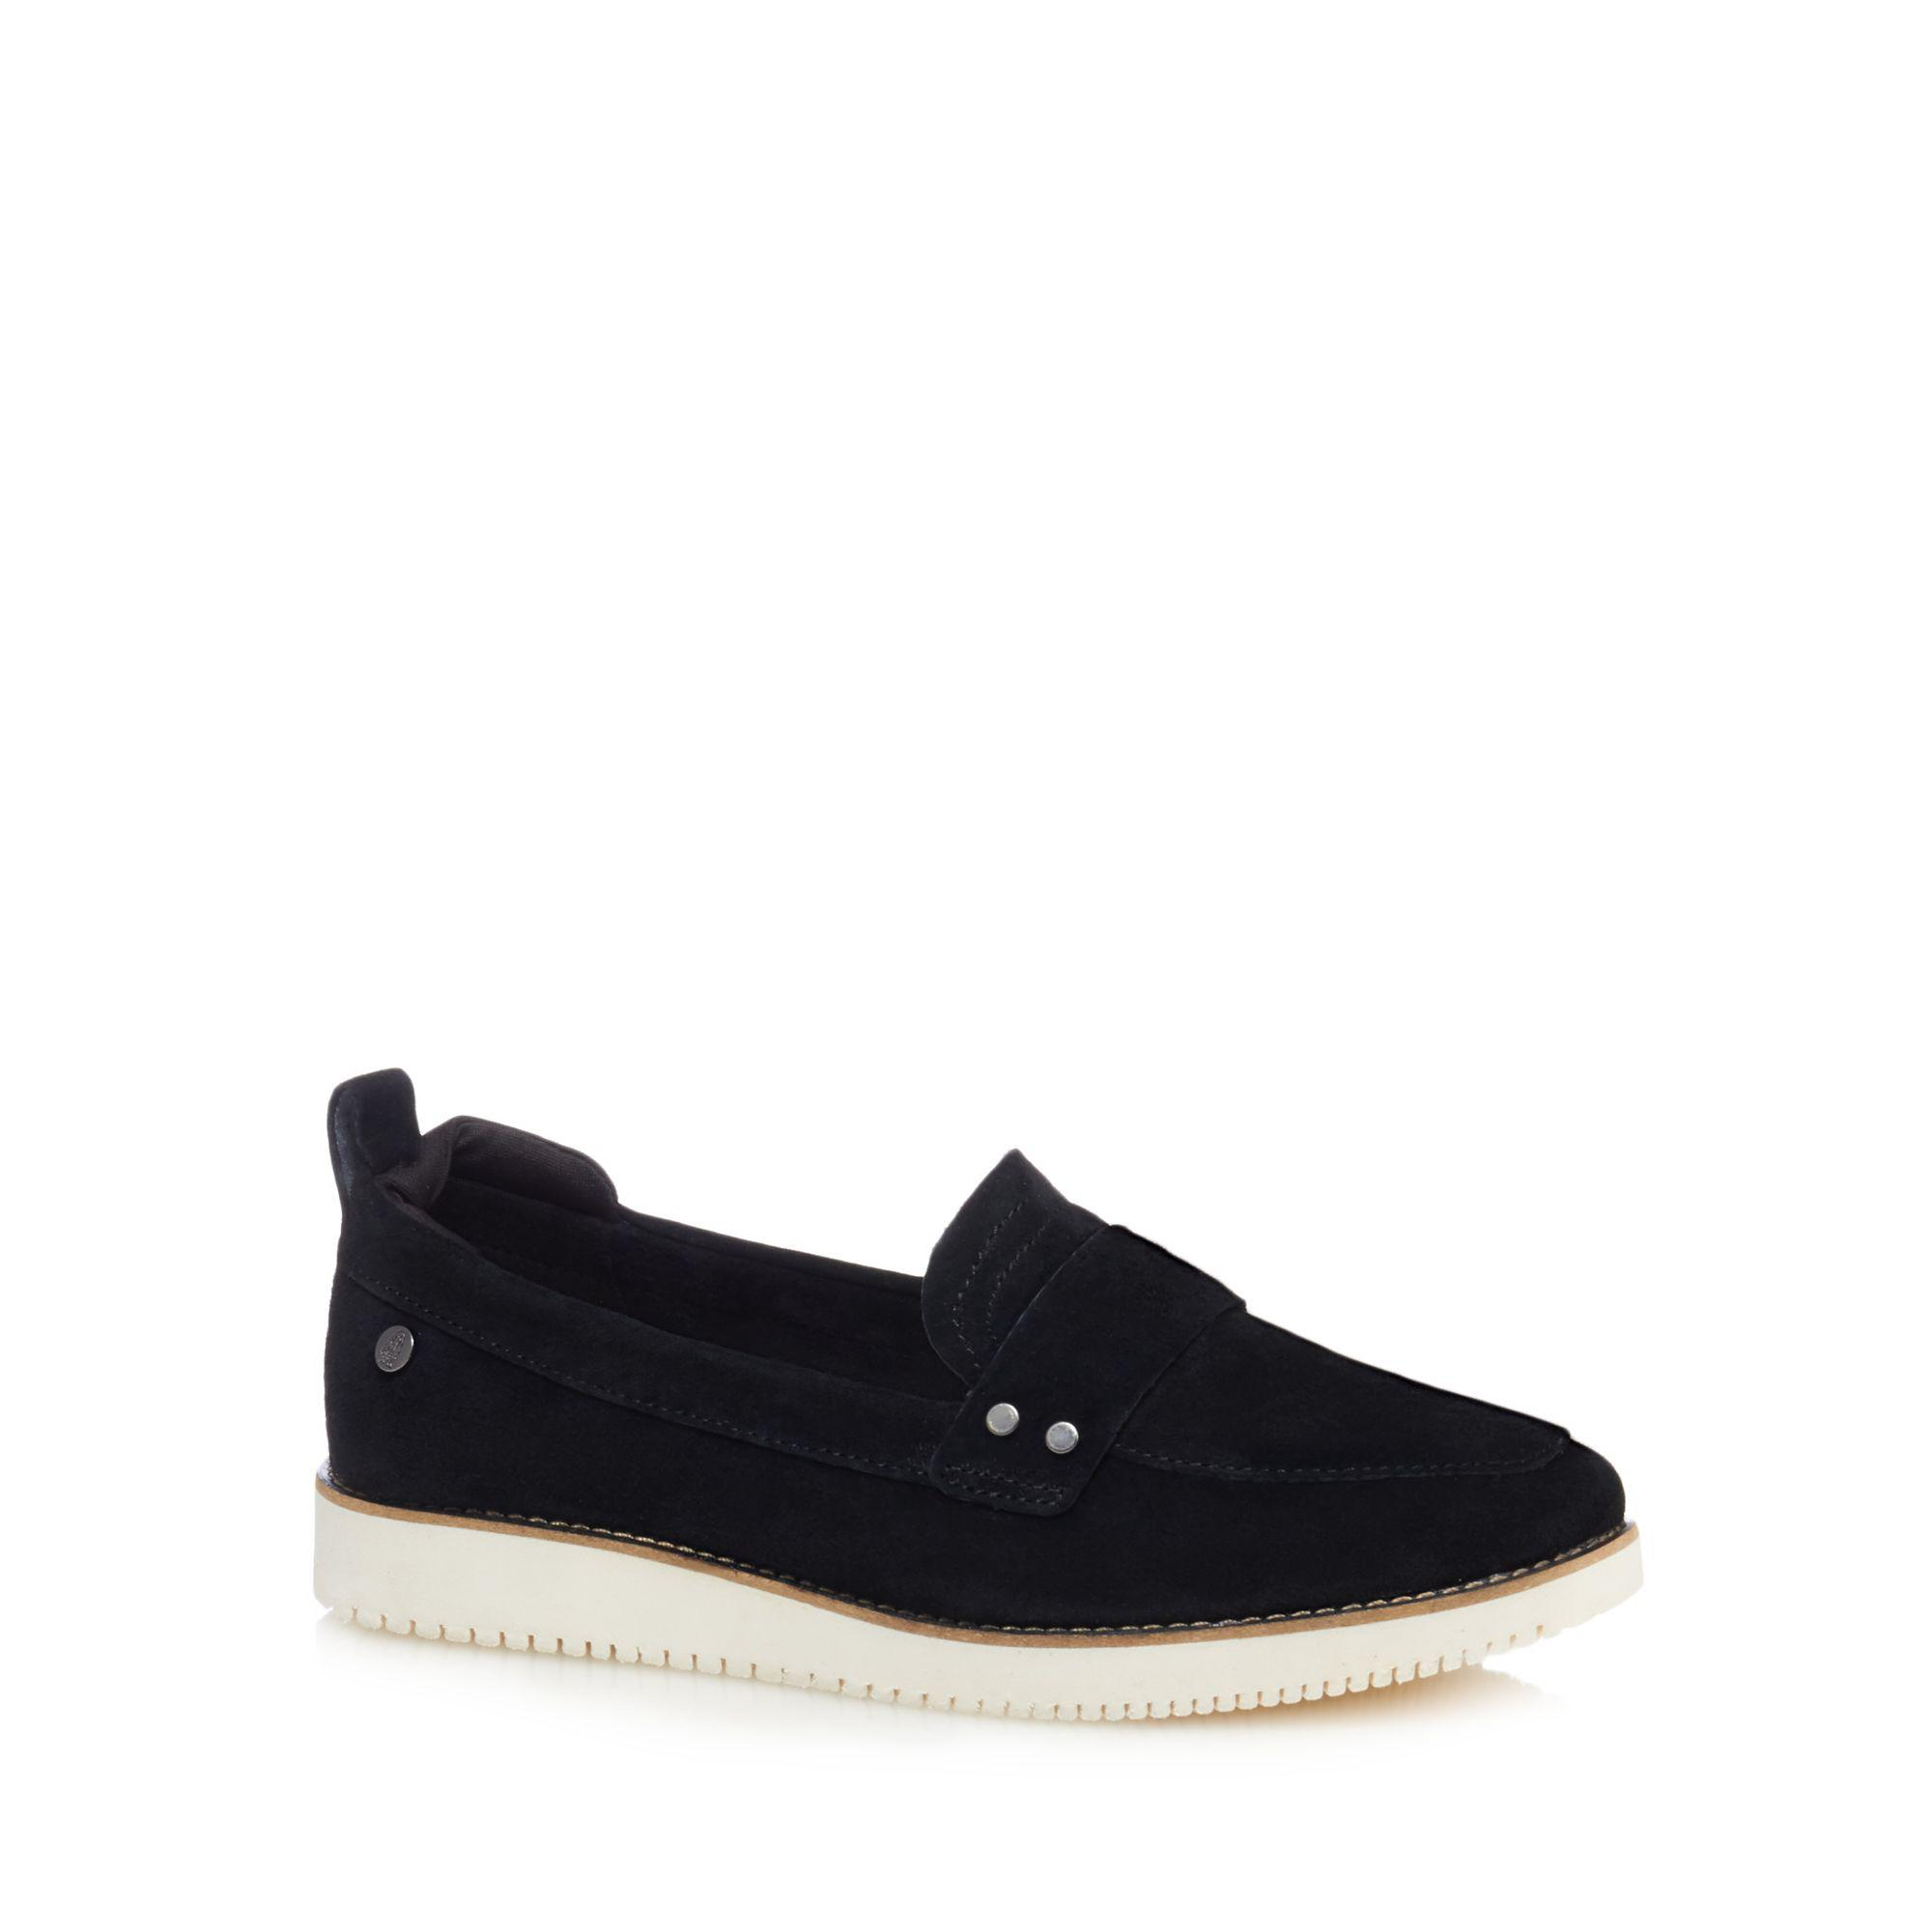 clearance supply buy cheap choice Black suede 'Chowchow 3' loafers SHX8st